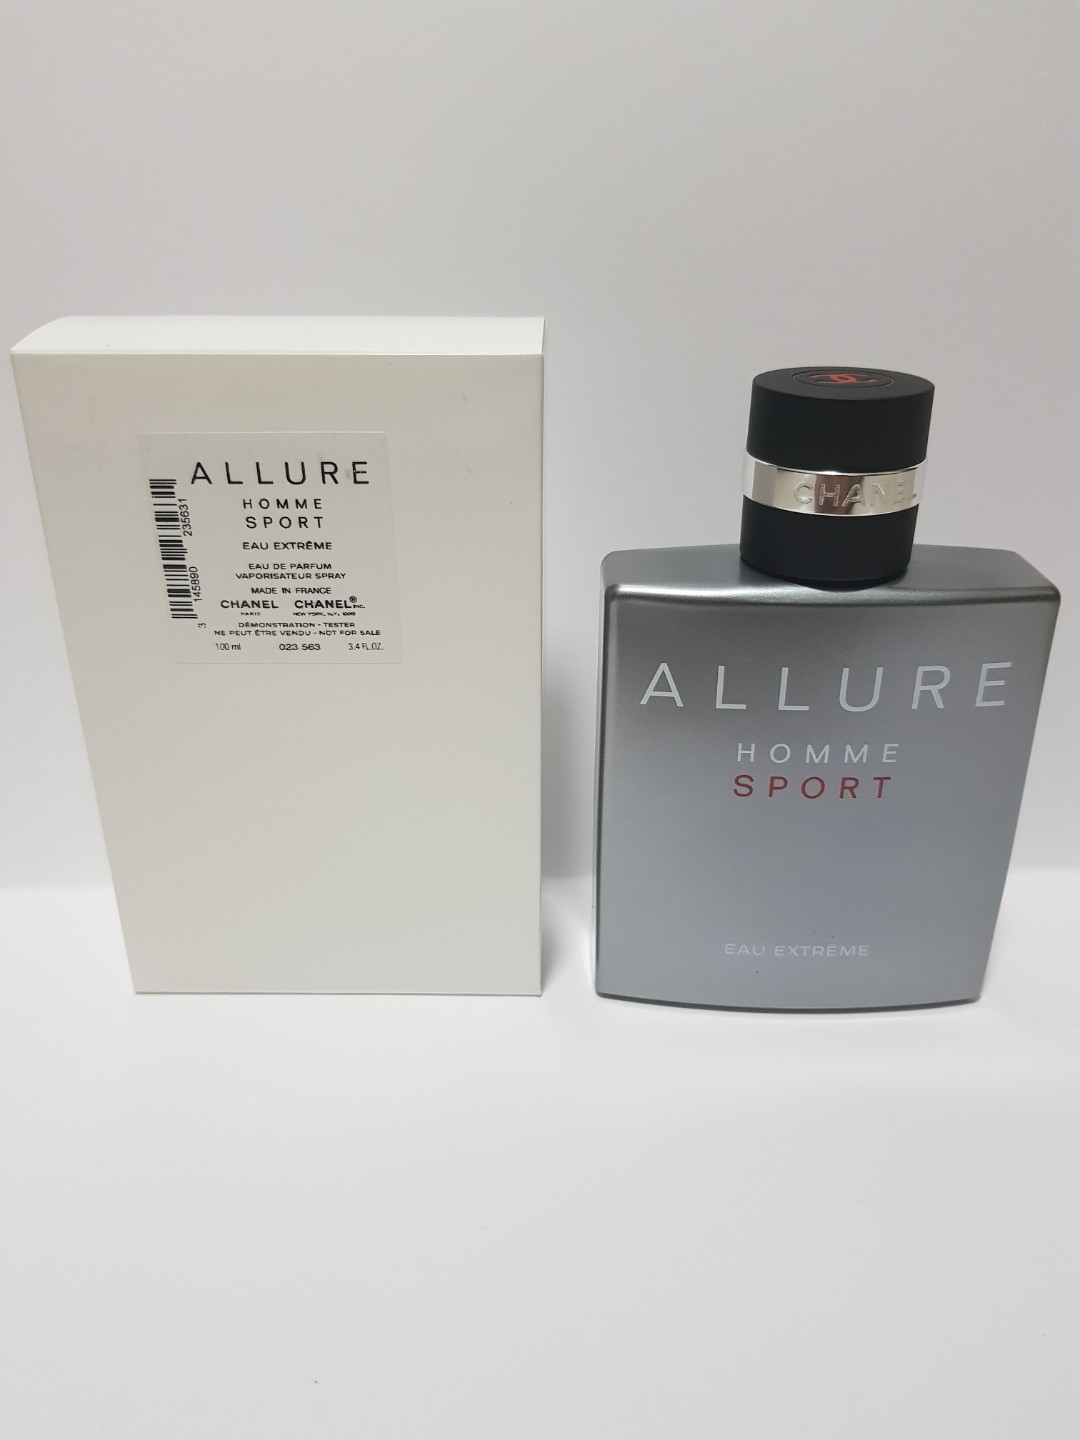 Chanel Allure Homme Sport Eau Extreme Health Beauty Perfumes